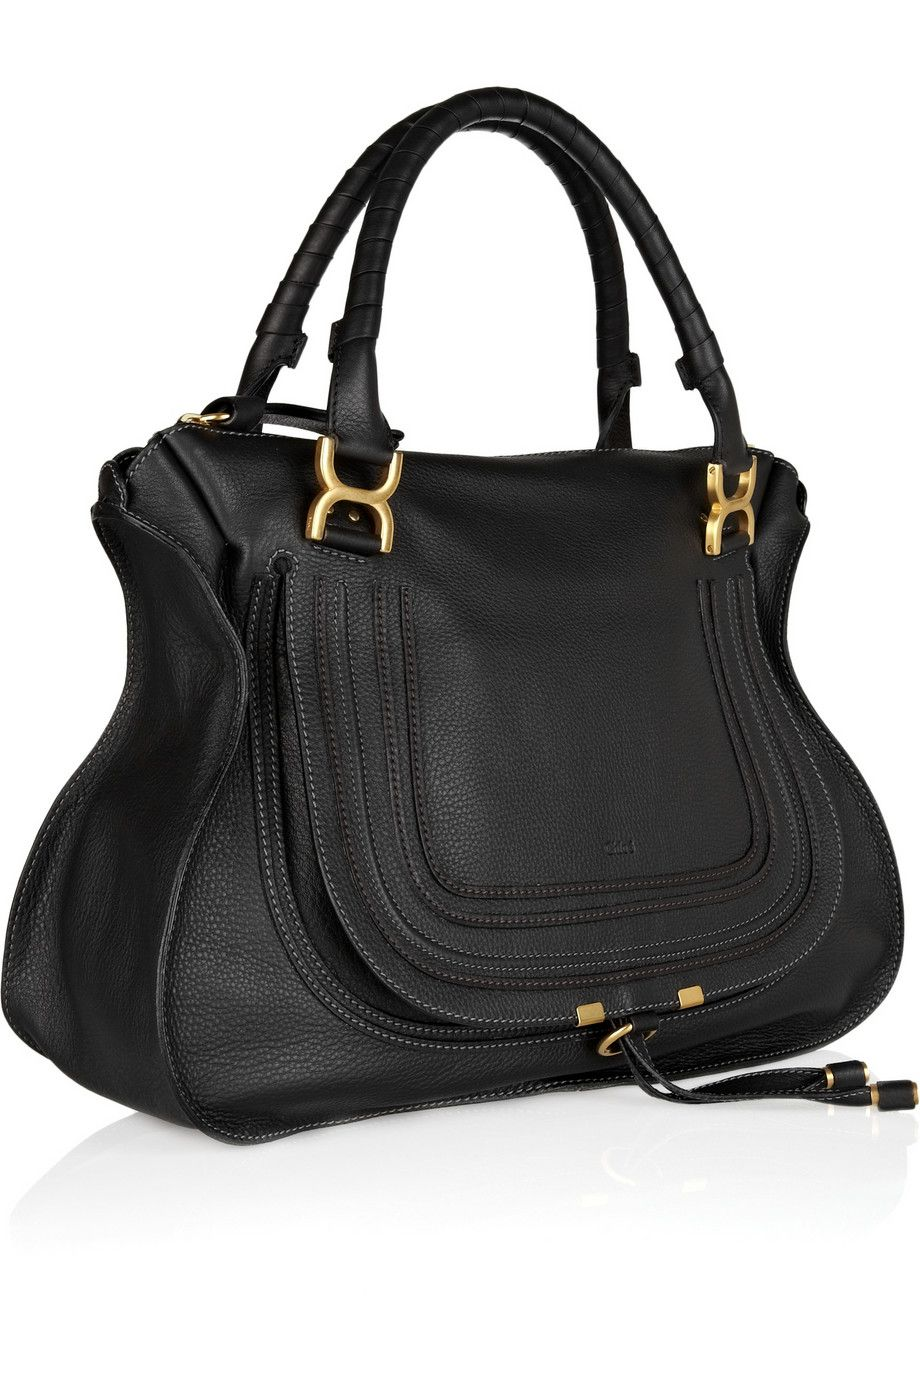 849234df9 Chloé   The Marcie large textured-leather tote   NET-A-PORTER.COM ...